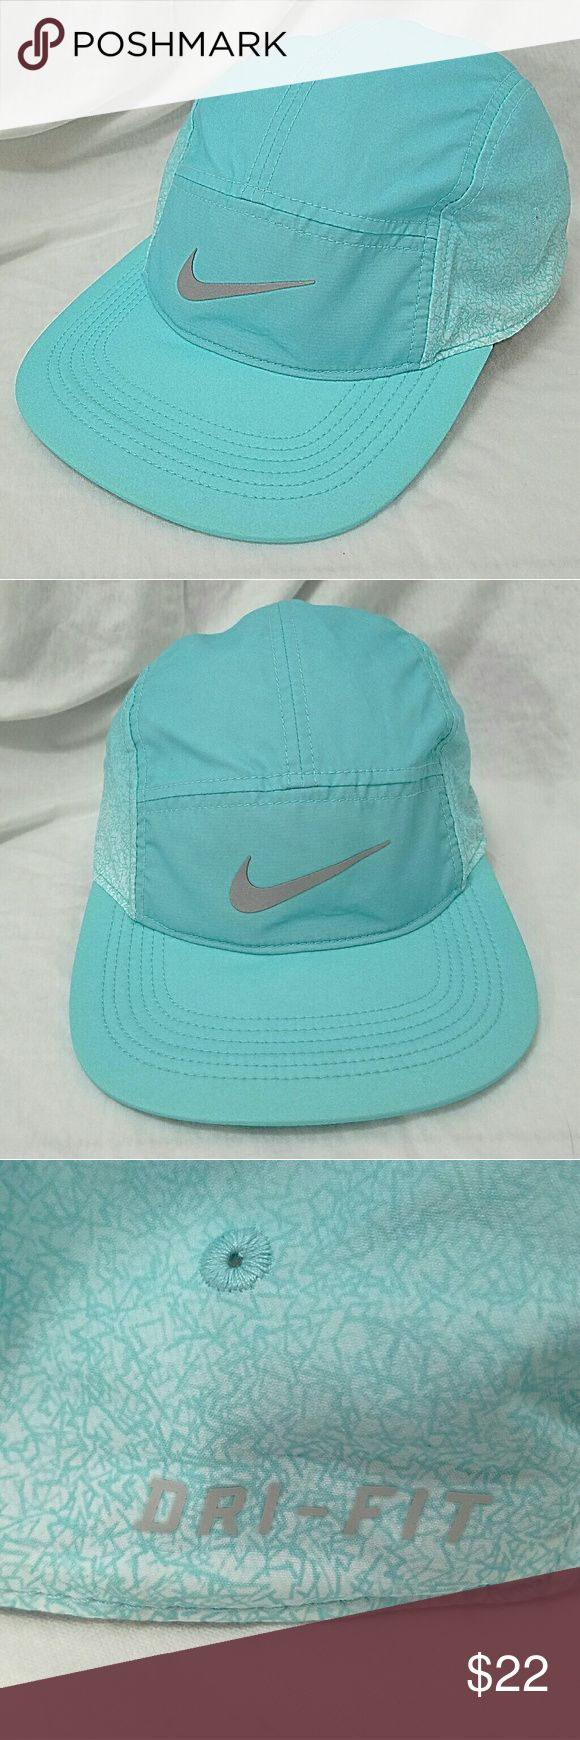 NIKE Women's Dri-Fit Aqua Blue Running Ball Cap Brand: Nike  Item: *Dri Fit Ladies Baseball Cap Hat *Silver Reflective Swoosh on the Front *The Side Panels Look Like a 'Scribble' Pattern *The Back Has an Adjustable Strap for Fit. *Inside Tag Says AW84 *One Size Fits All *Excellent, Like New Pre-Loves Condition  *Please check my lisings if you happen to be looking for more ladies caps and would want to bundle  *no trades, offers via offer button only* Nike Accessories Hats